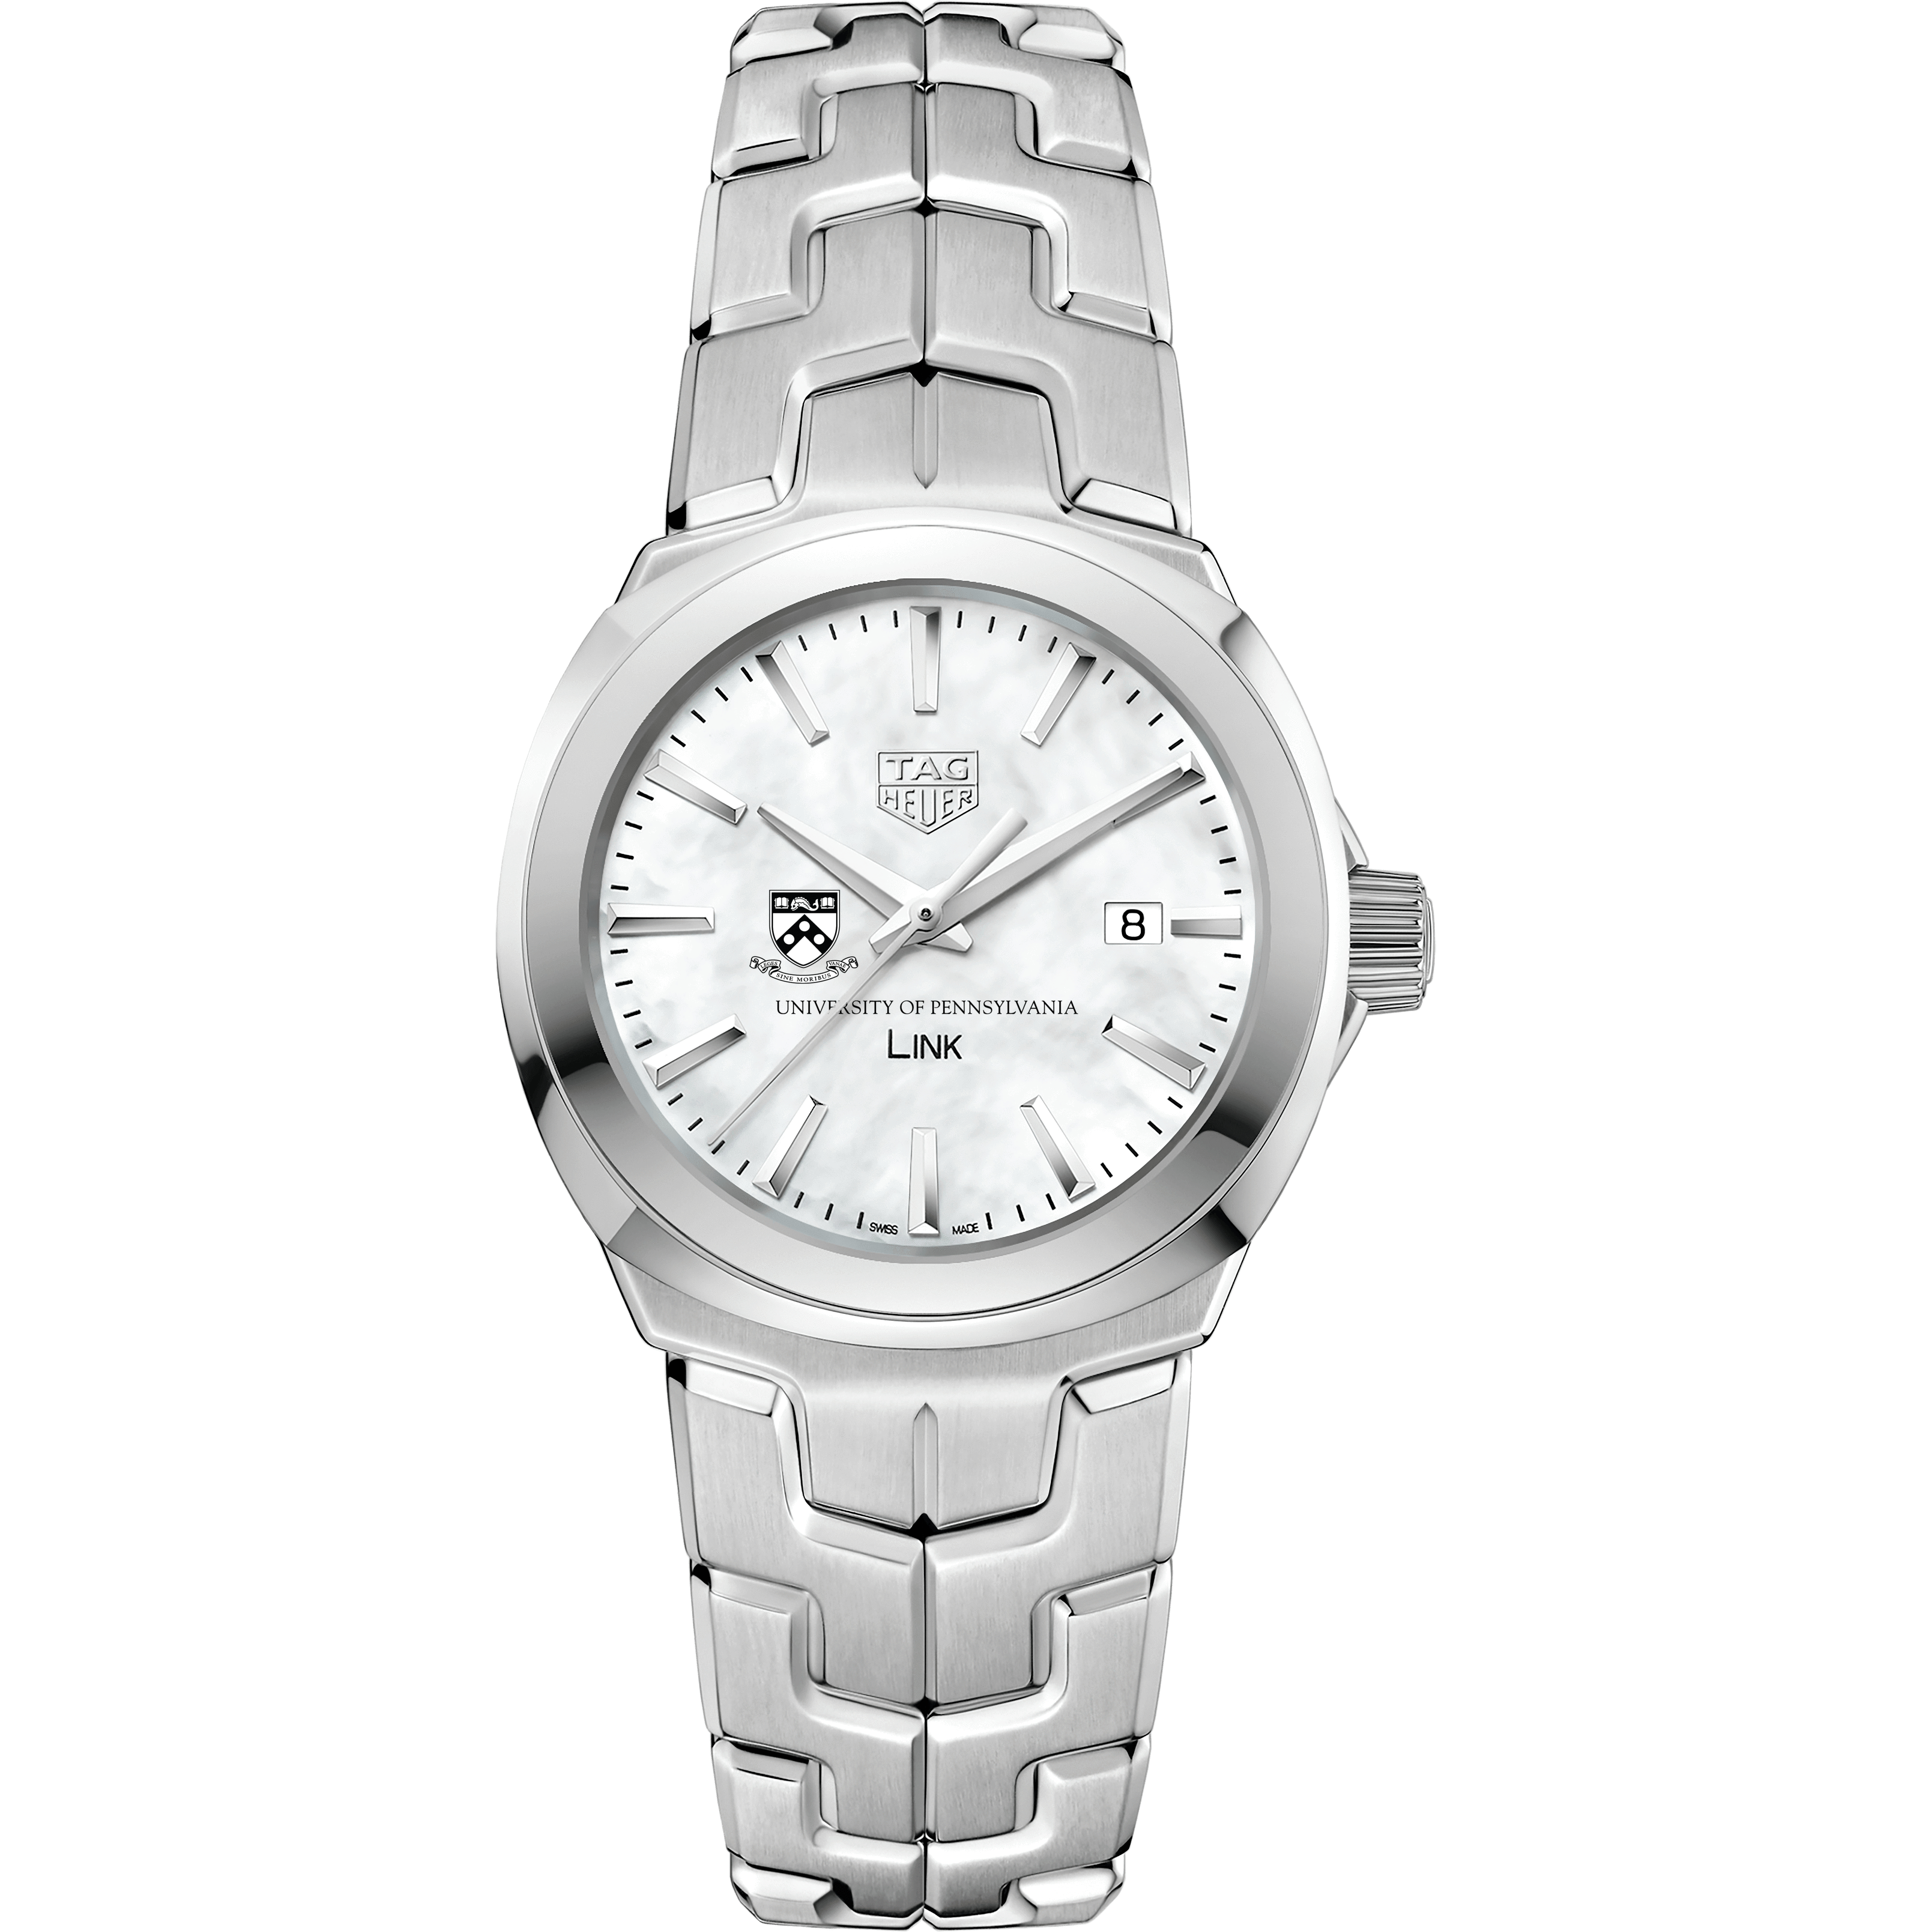 University of Pennsylvania TAG Heuer LINK for Women - Image 2